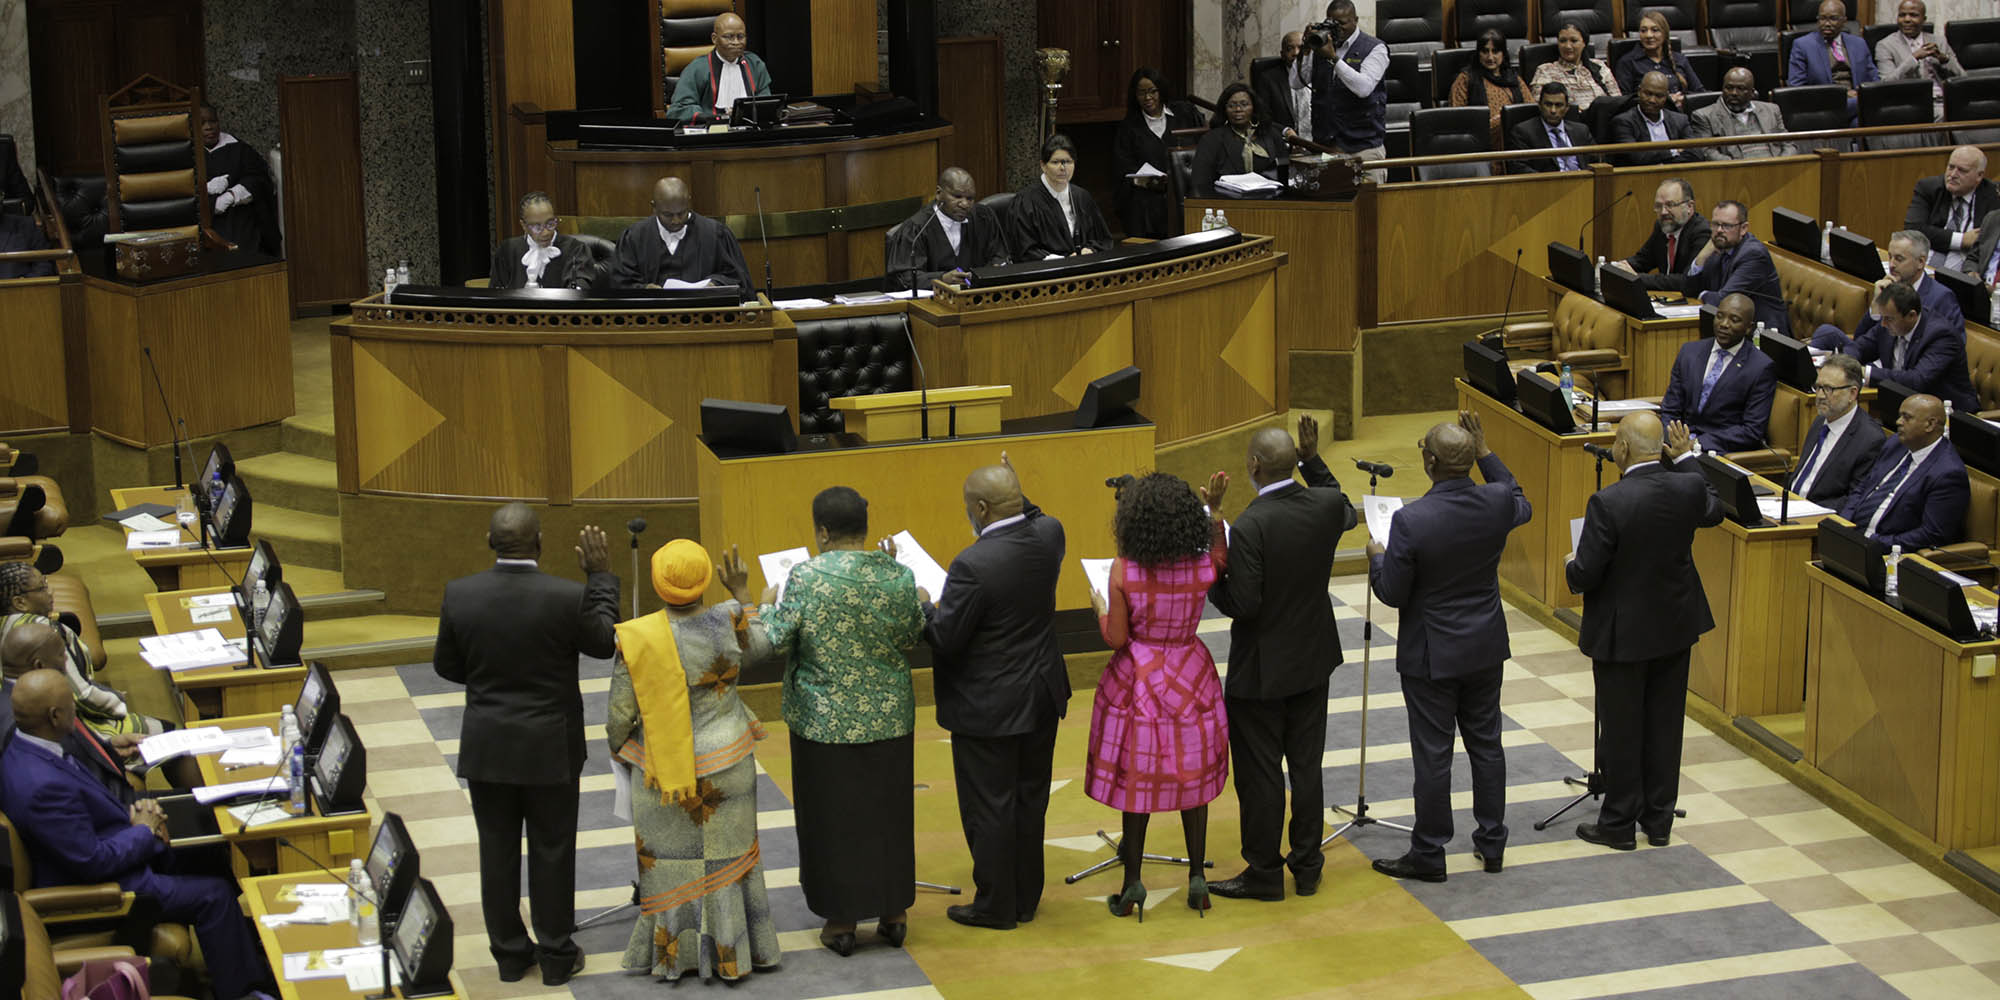 SA's 6th Parliament: High spirits, high energy as new MPs sworn in at Parliament